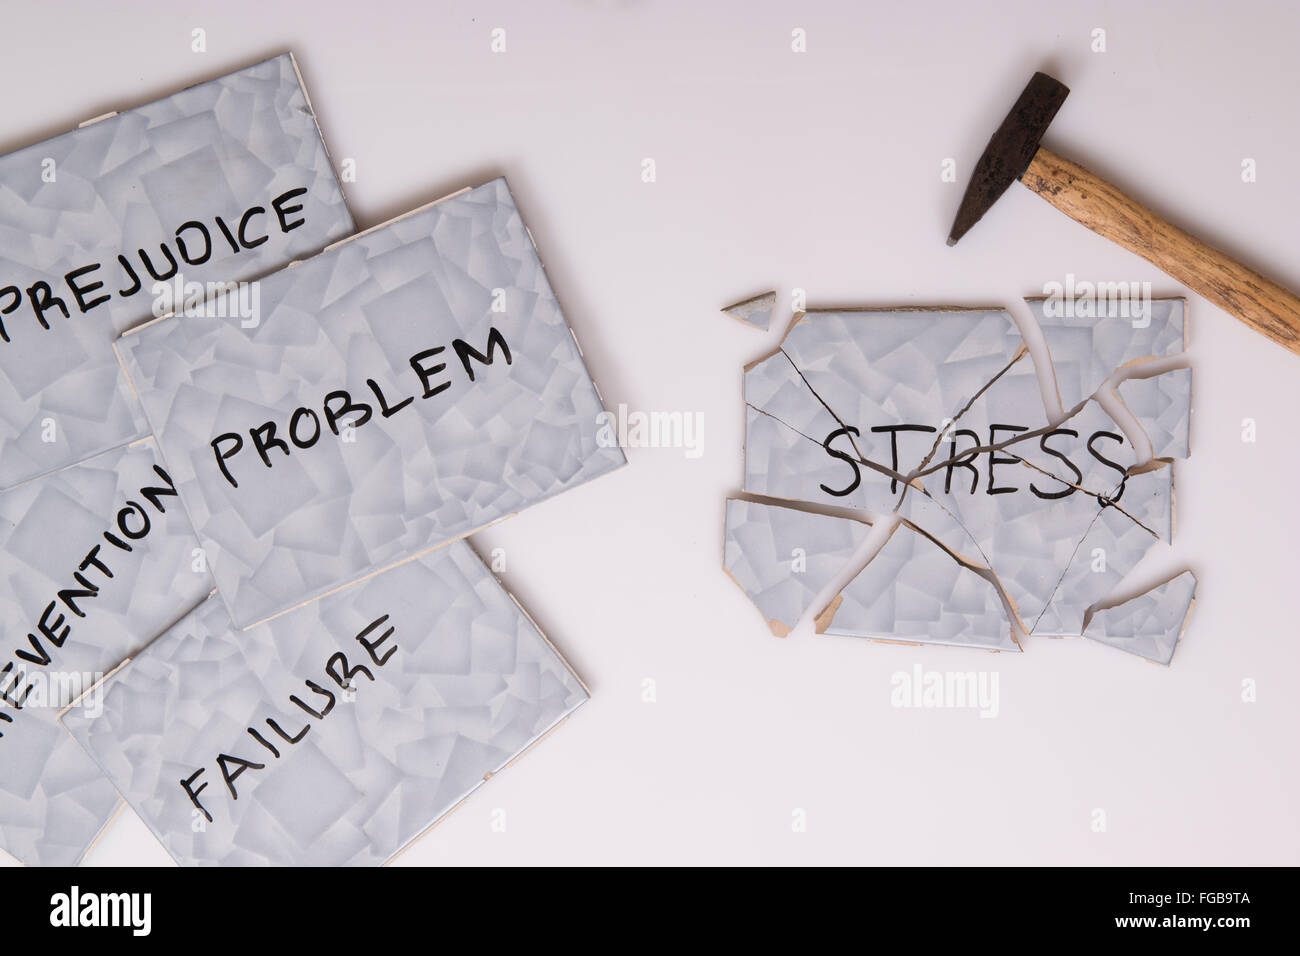 overcome stress and problems - Stock Image